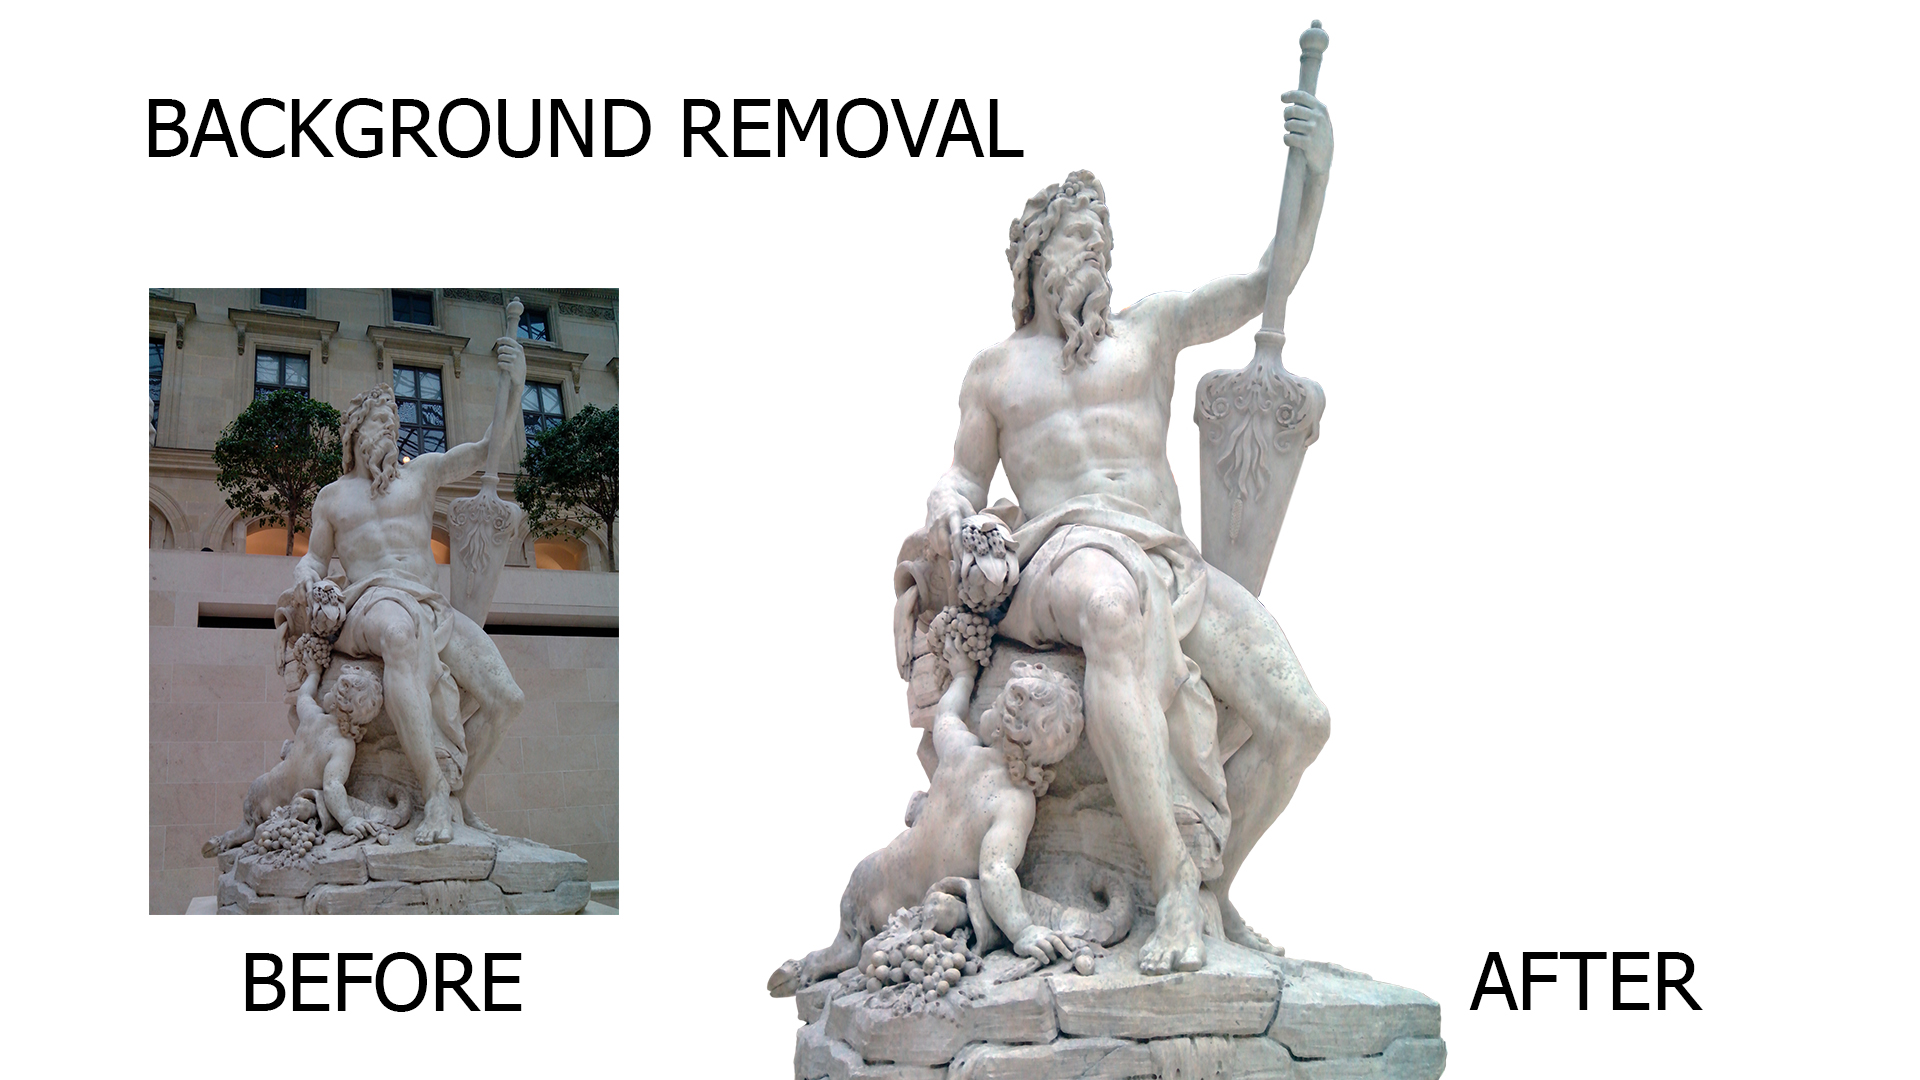 remove background from 10 photos TODAY